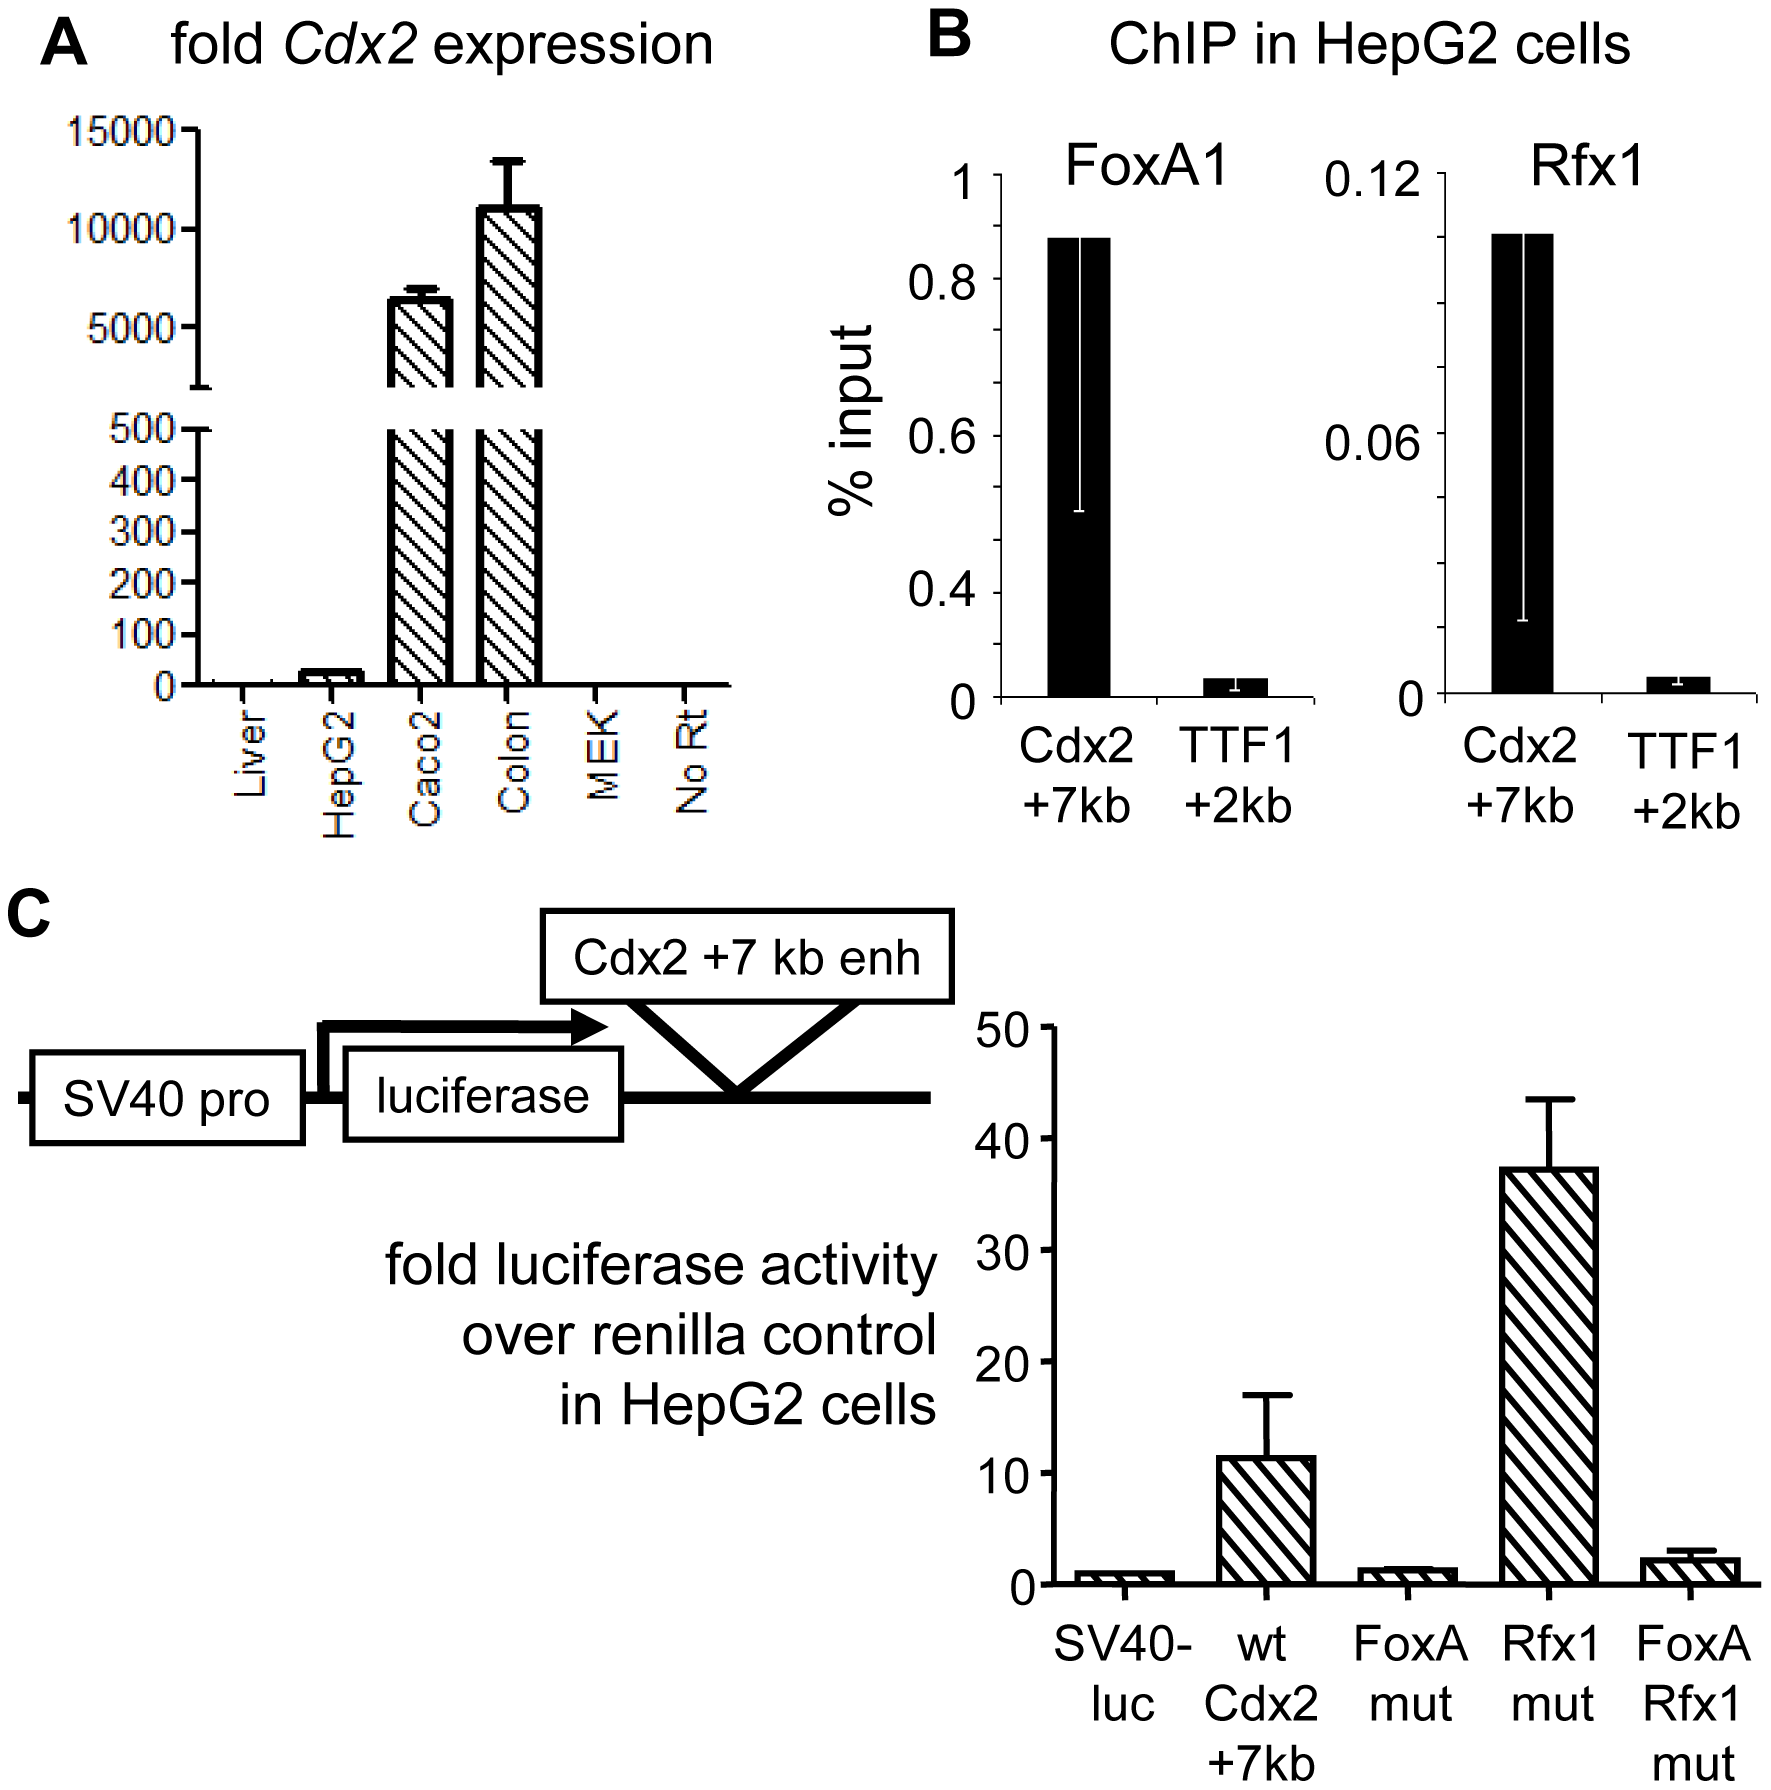 Genetic interactions at the Cdx2 +7 kb enhancer.